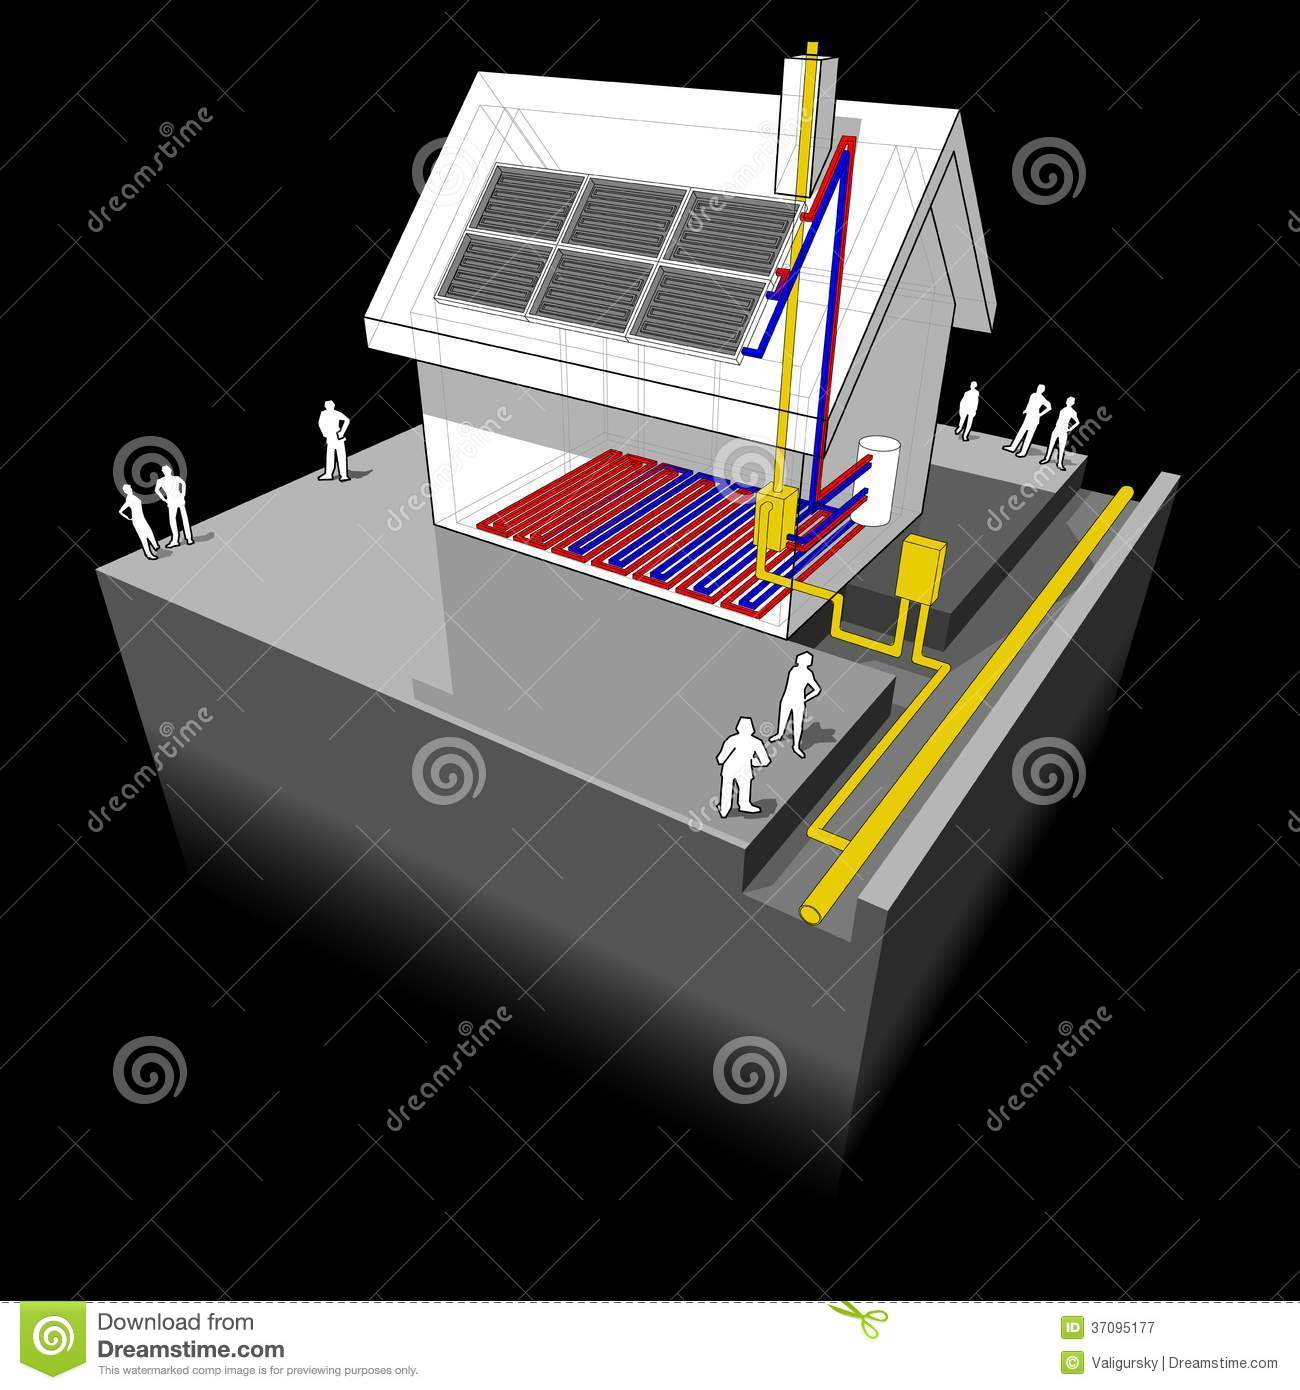 ... with natural gas heater, underfloor heating and solar panels diagram